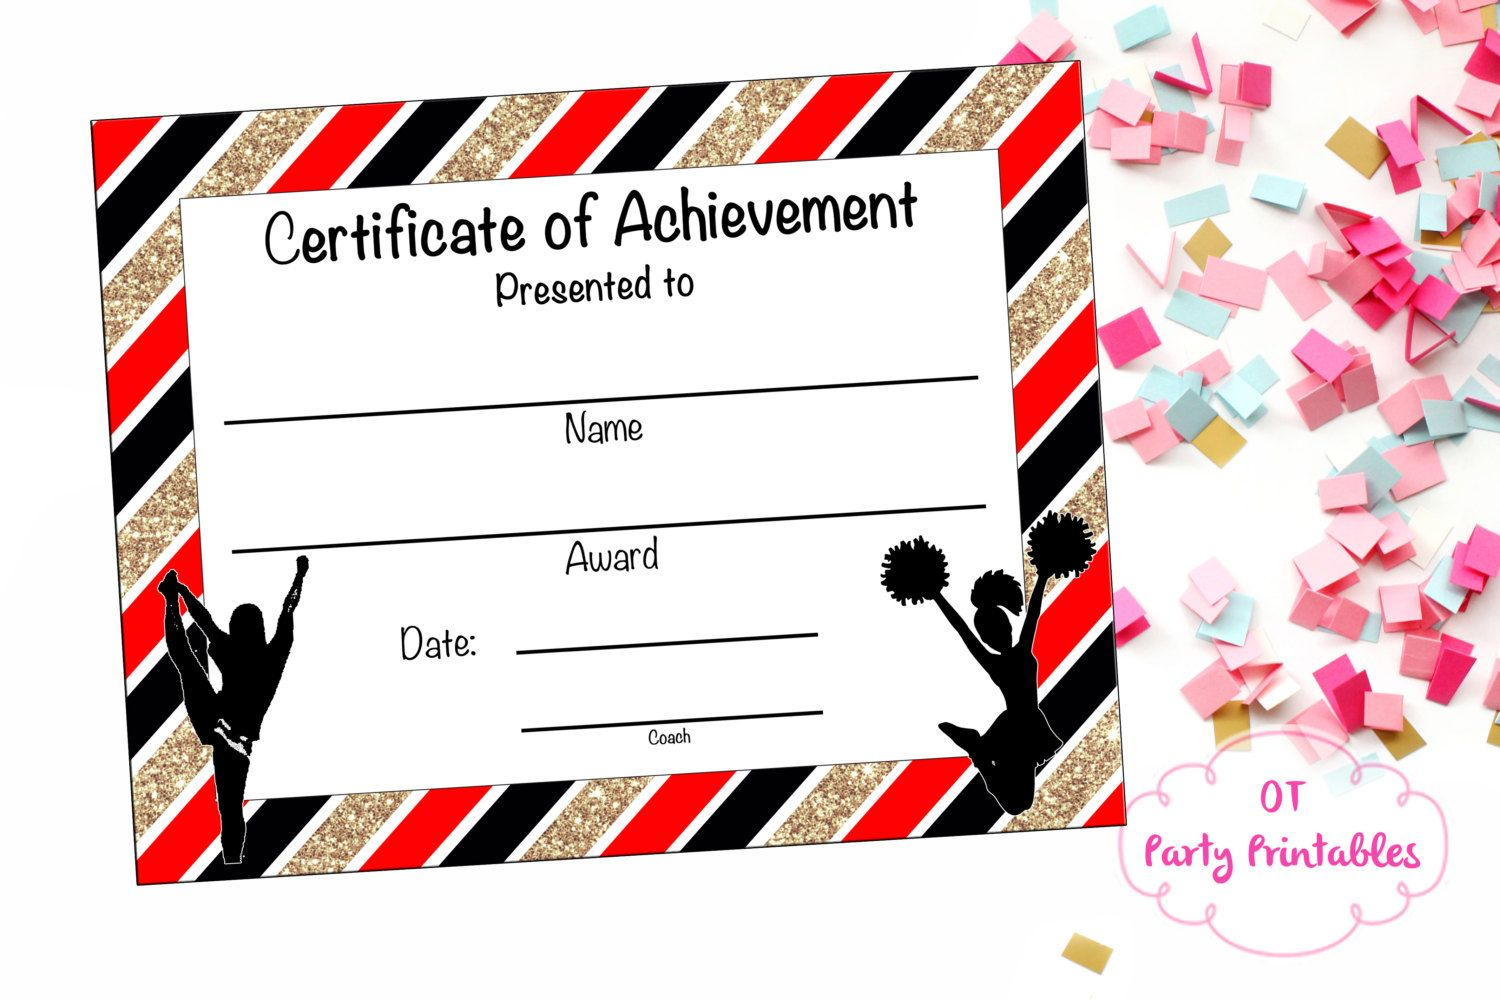 Cheer certificates templates cheerleading certificate cheerleading cheer certificates templates cheerleading certificate cheerleading award cheerleading yelopaper Image collections